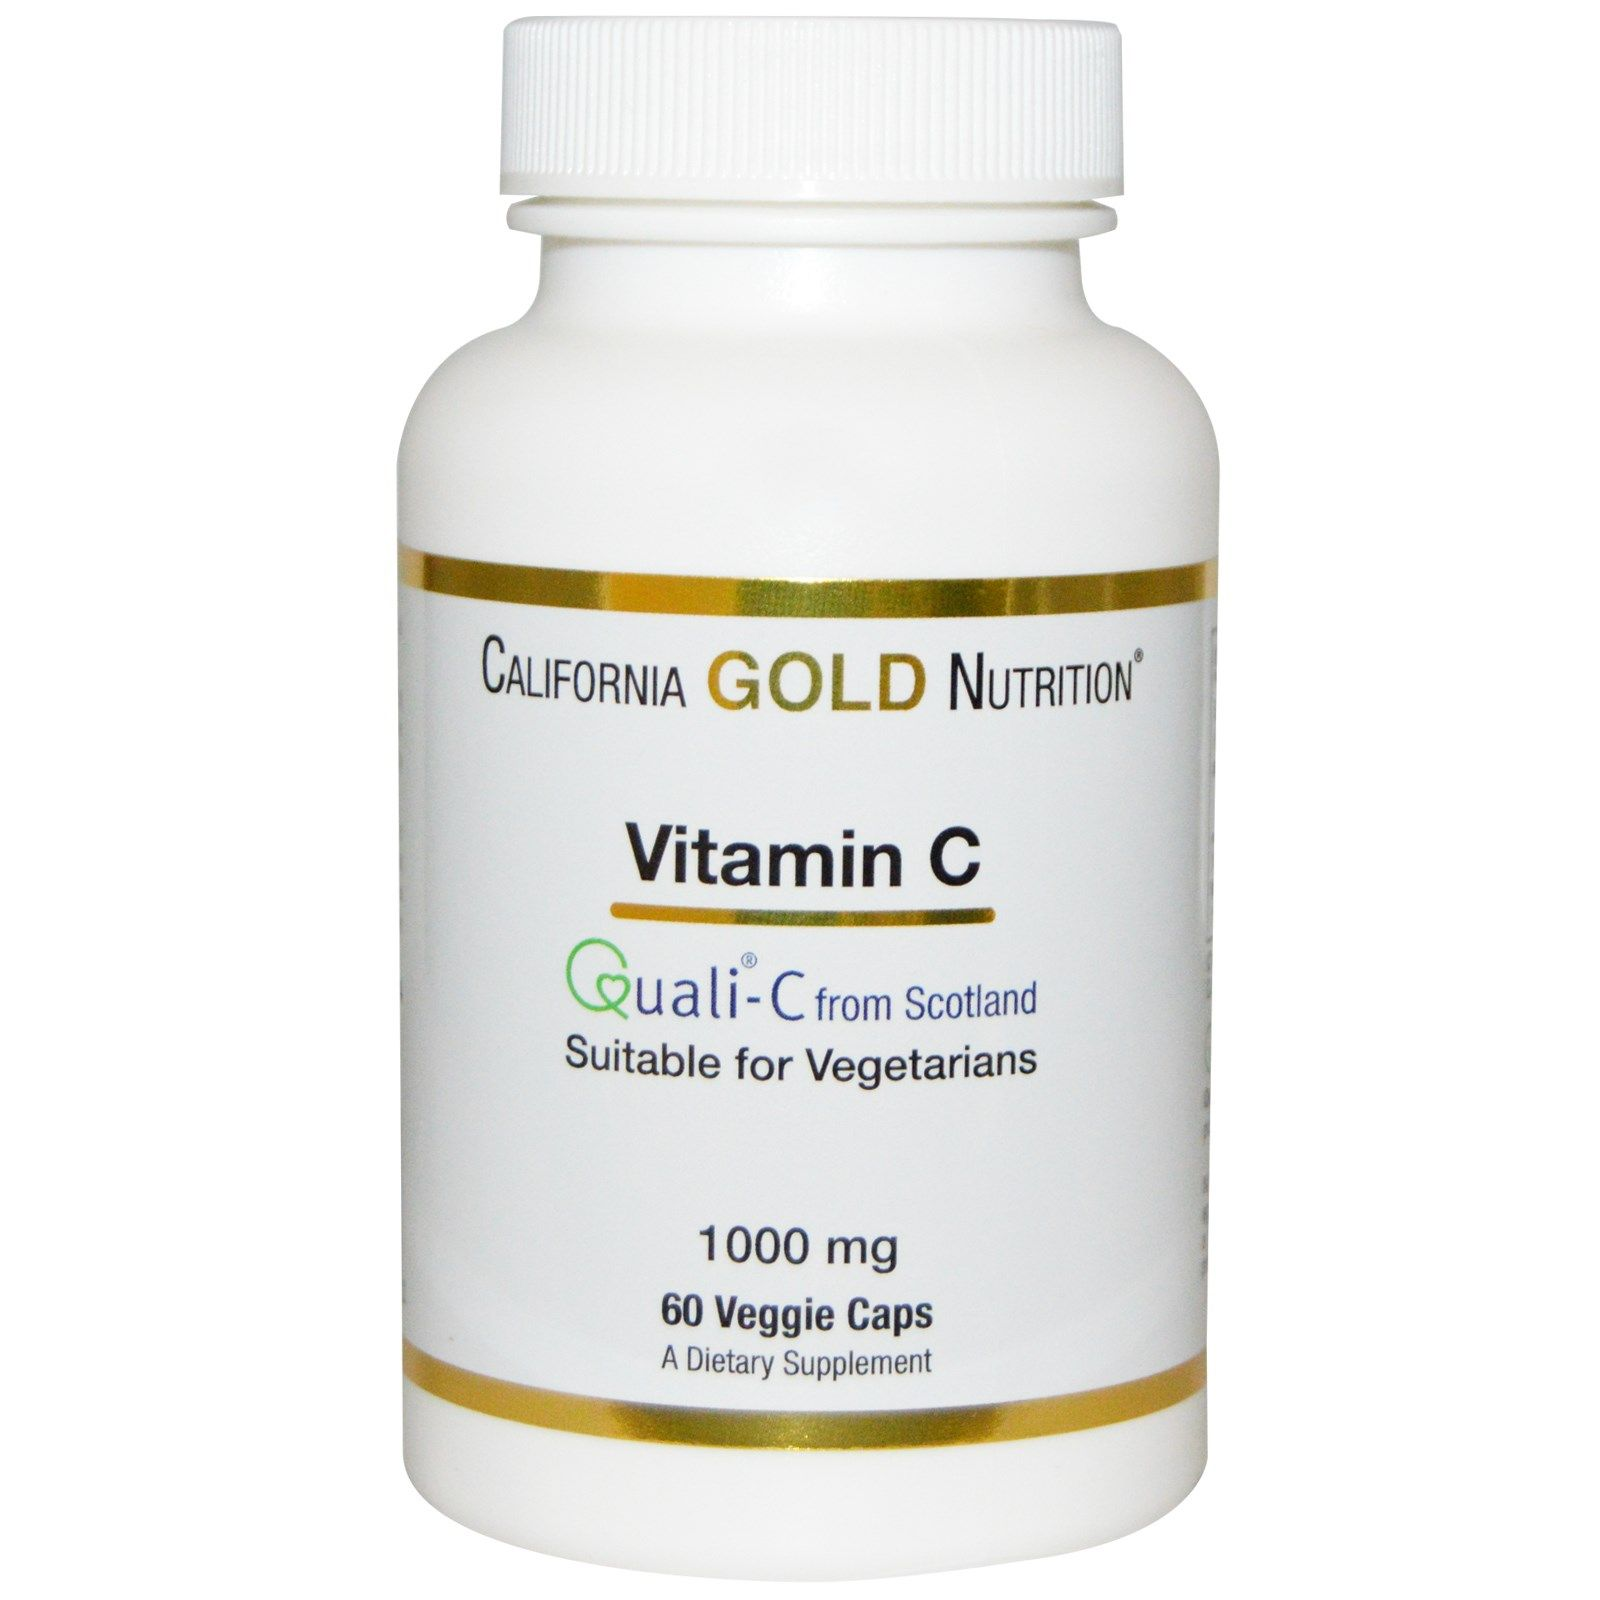 California Gold Nutrition, Gold C, Vitamin C, 1,000 mg, 60